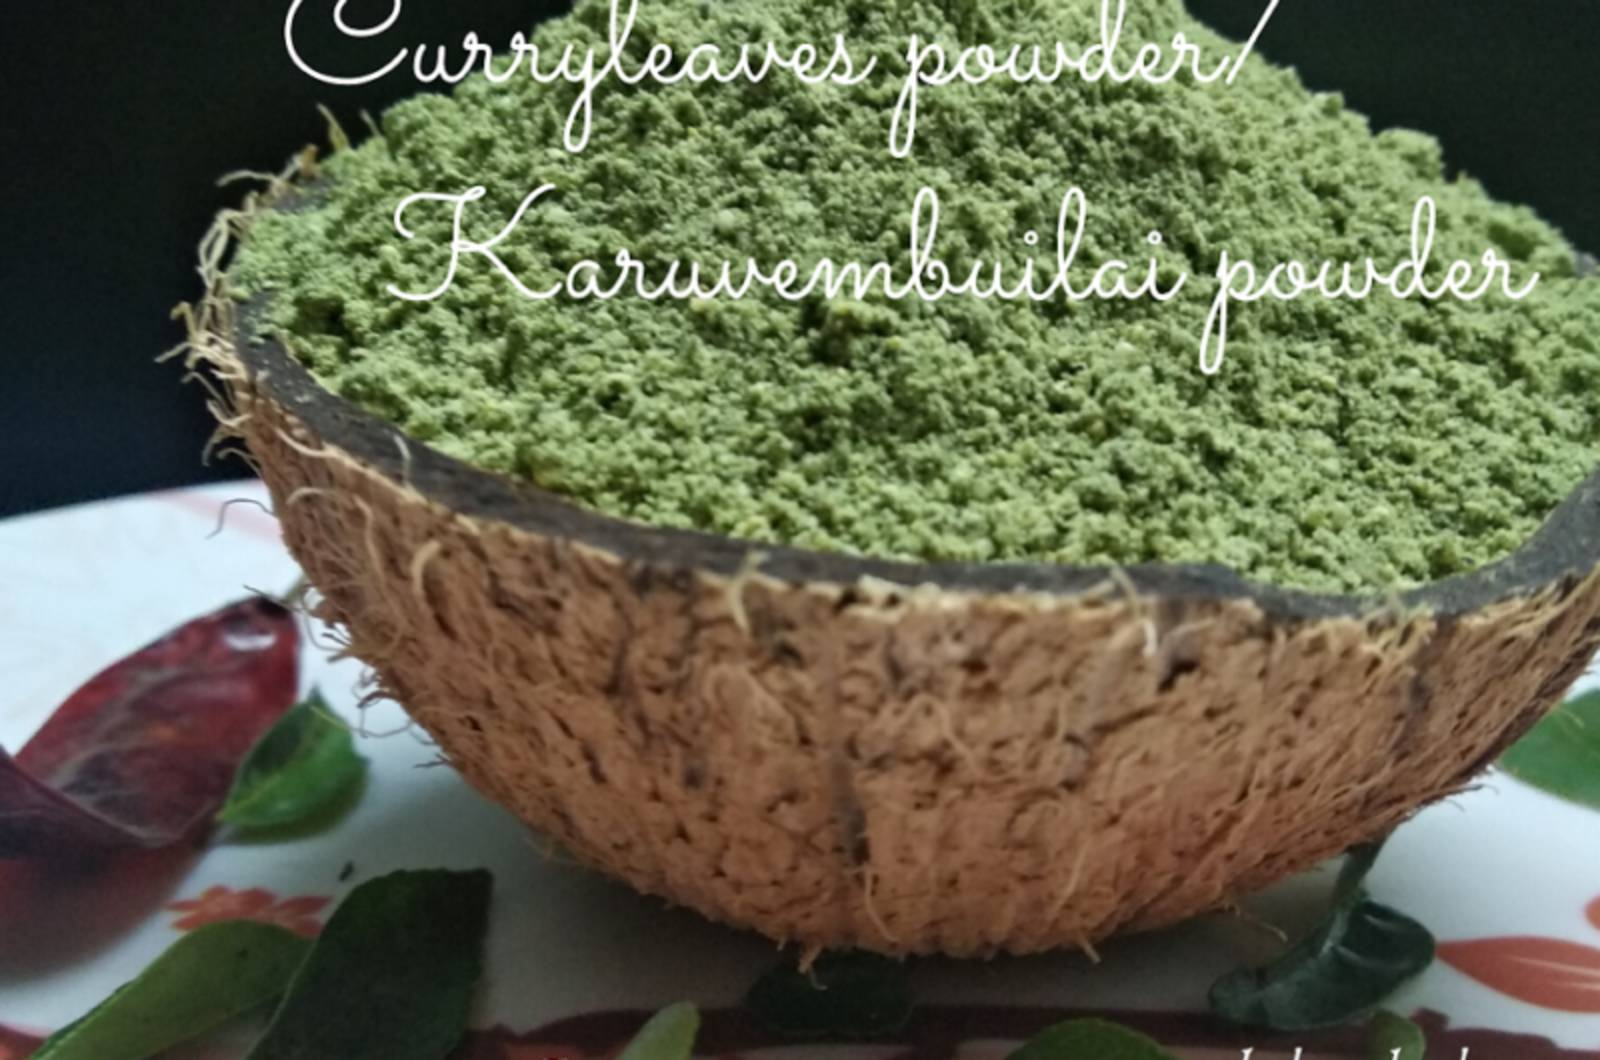 INSTANT CURRY LEAVES POWDER